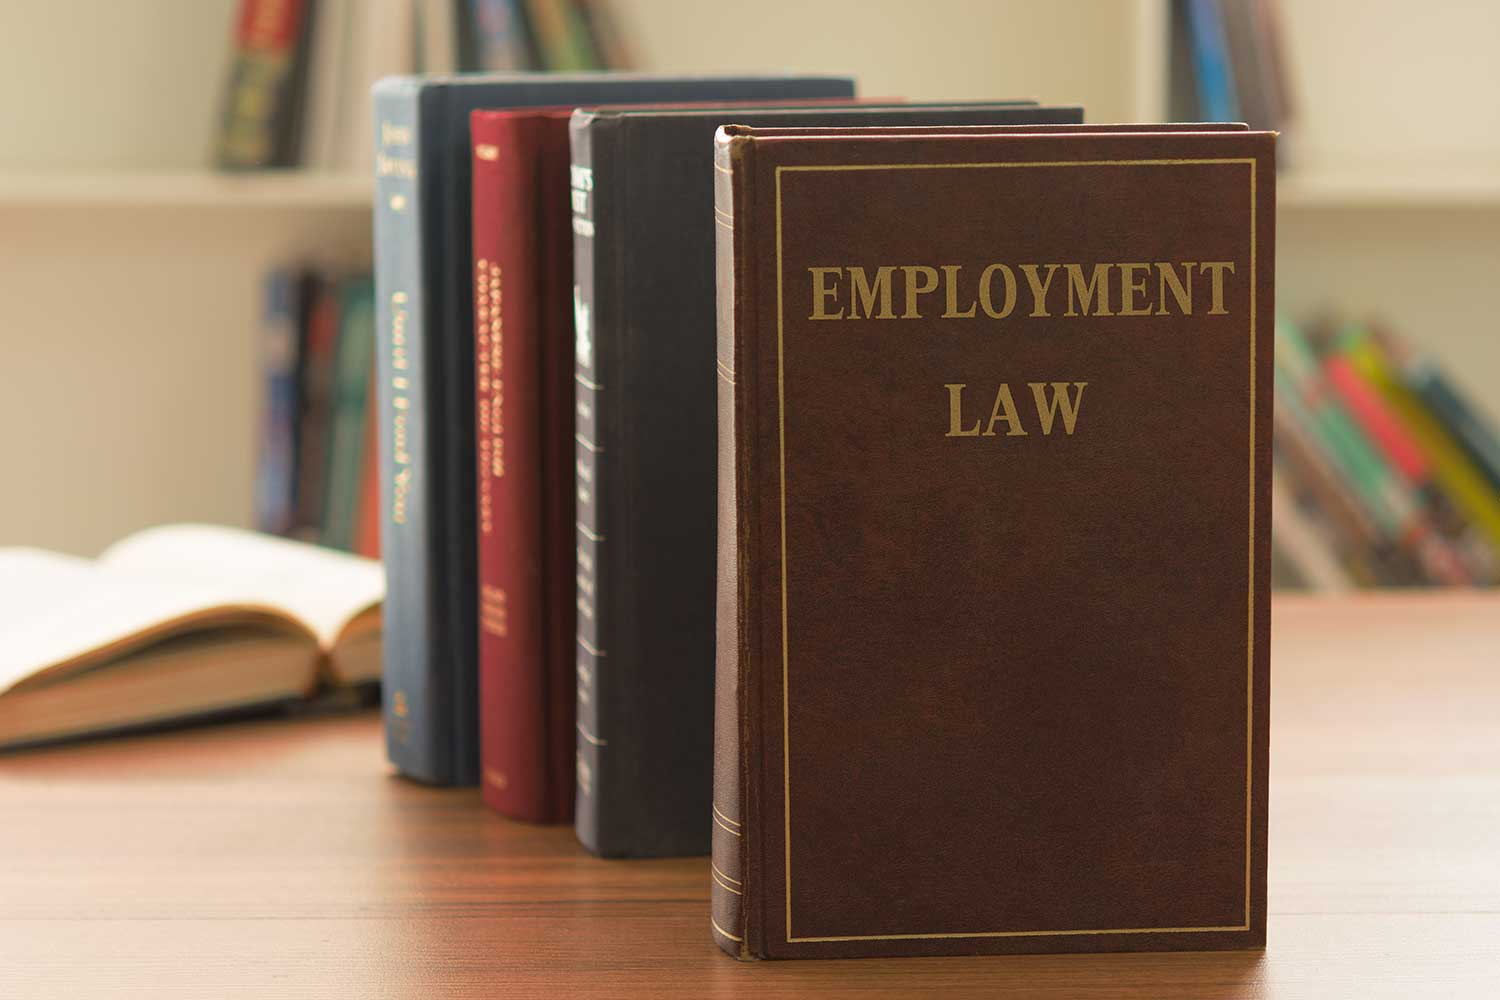 What changes will there be to Employment Law in 2020?